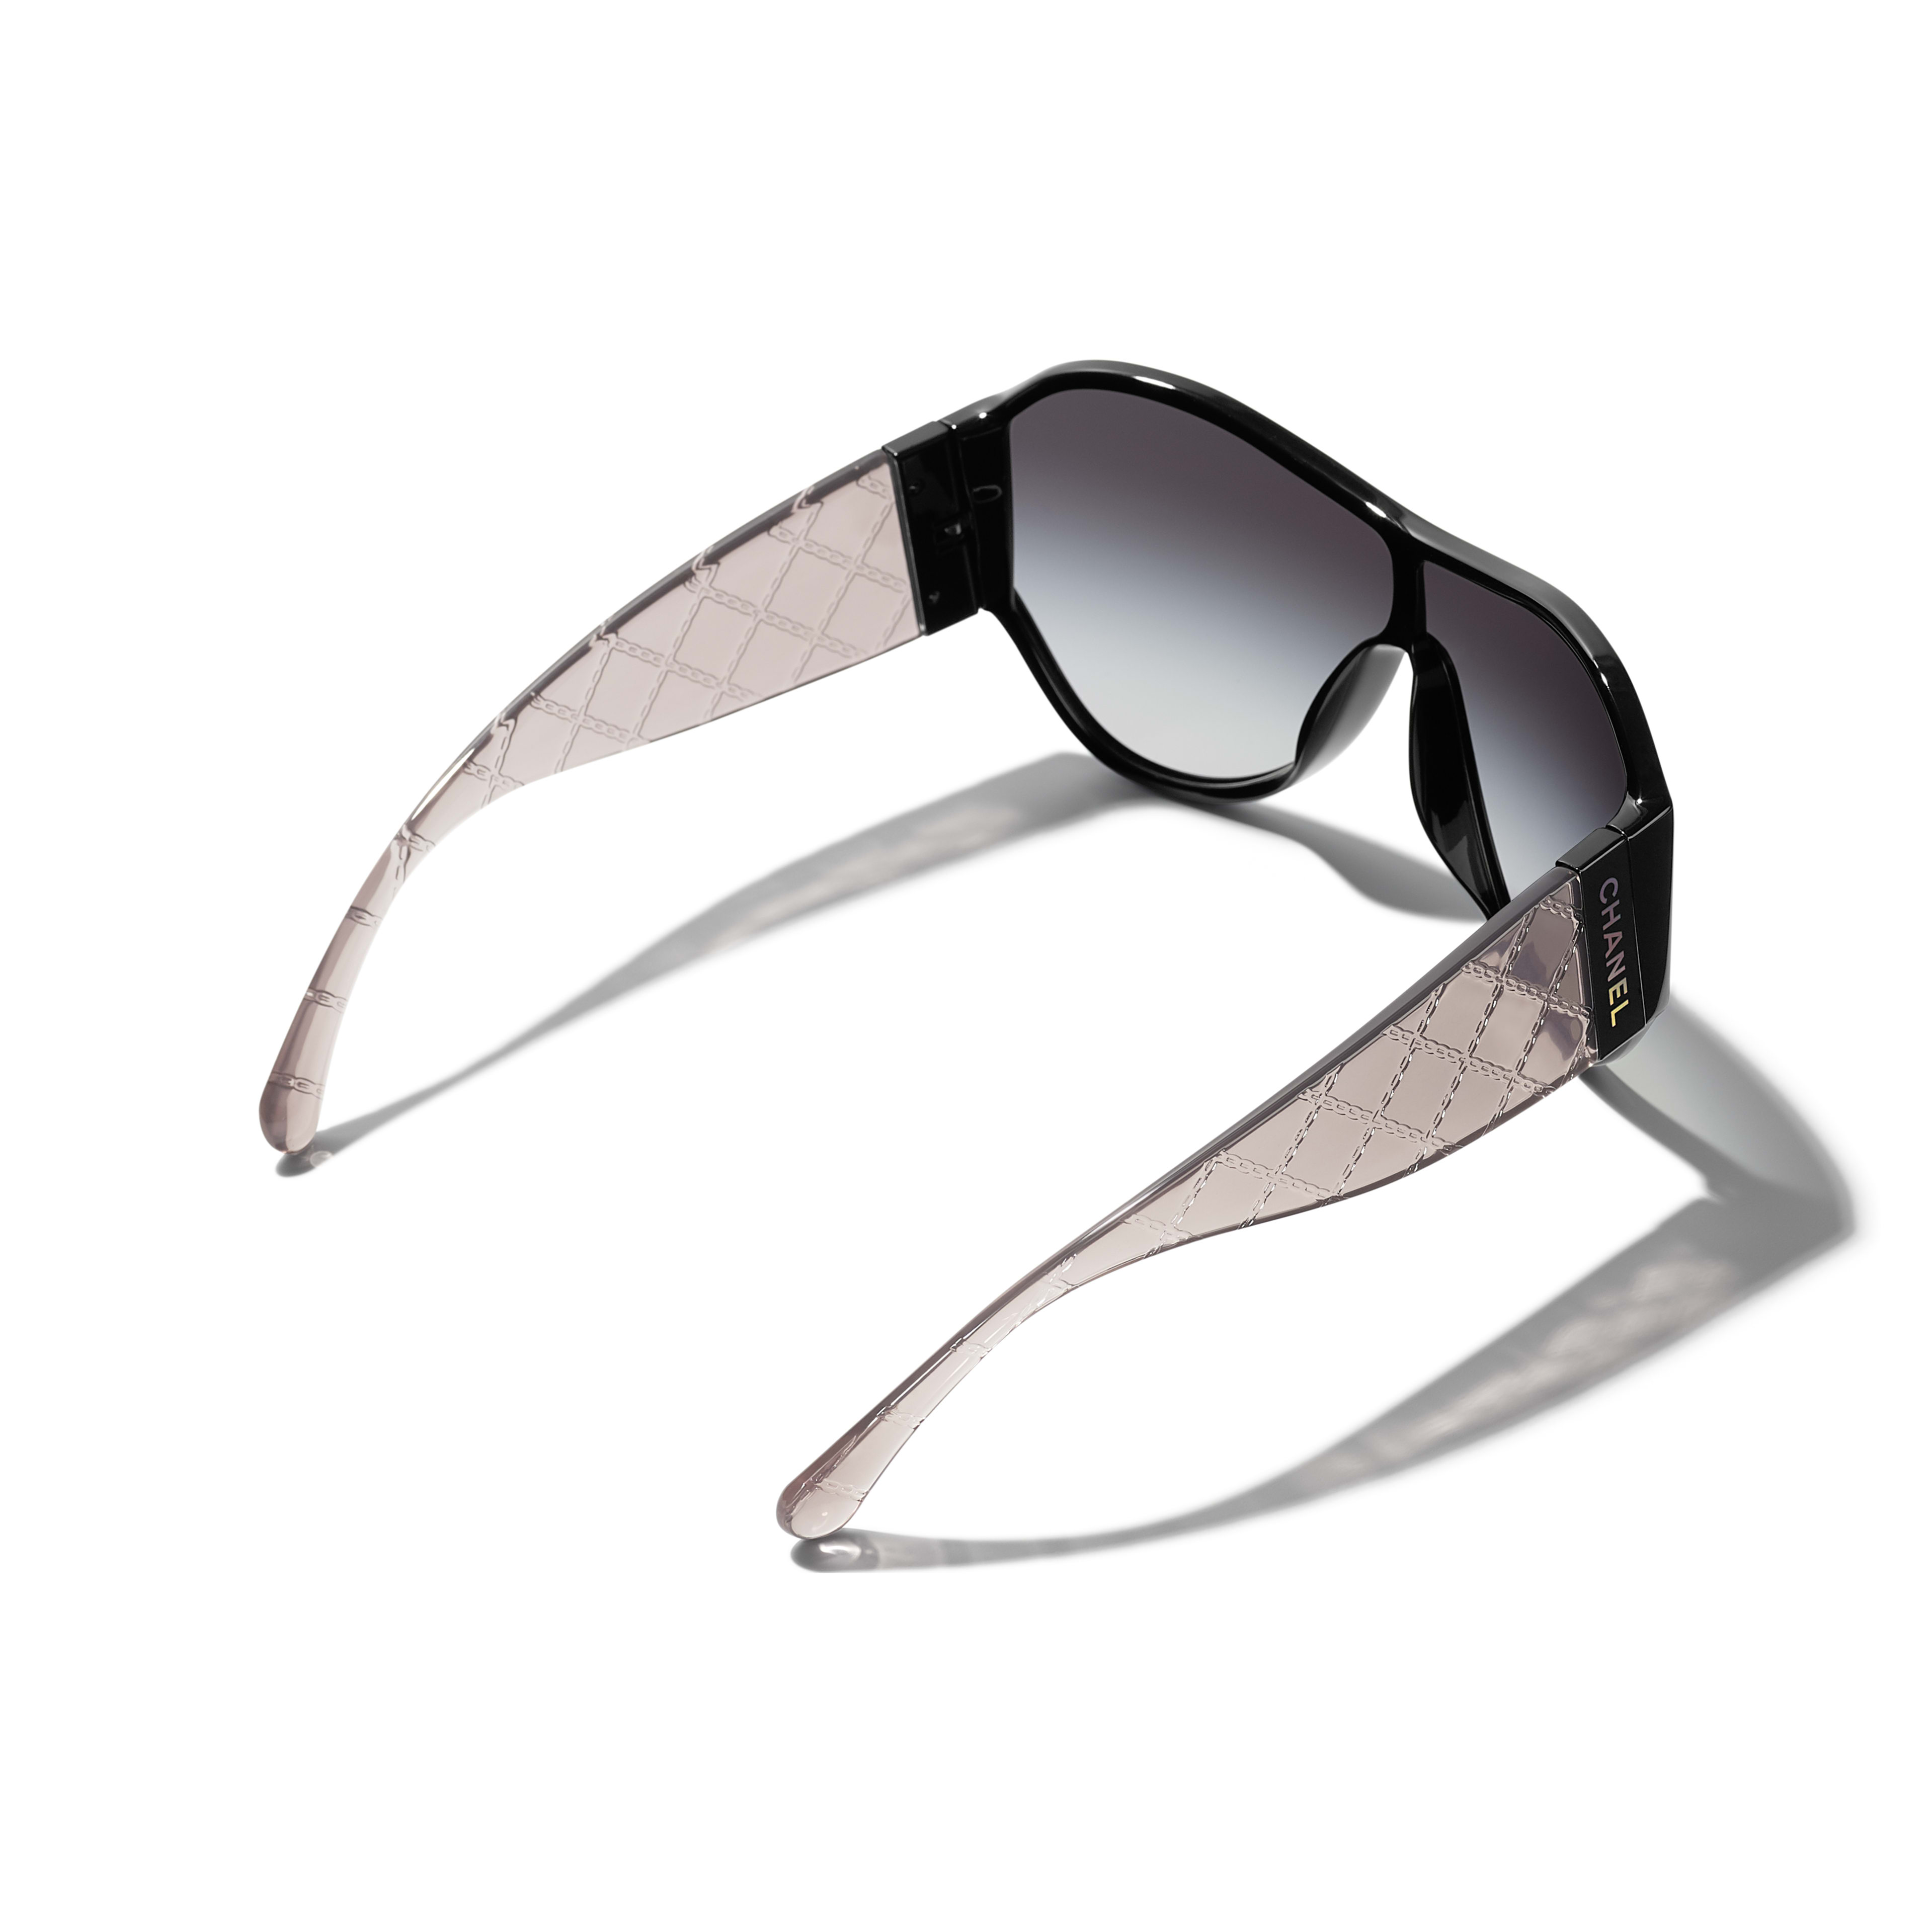 Shield Sunglasses - Black - Acetate - CHANEL - Extra view - see standard sized version